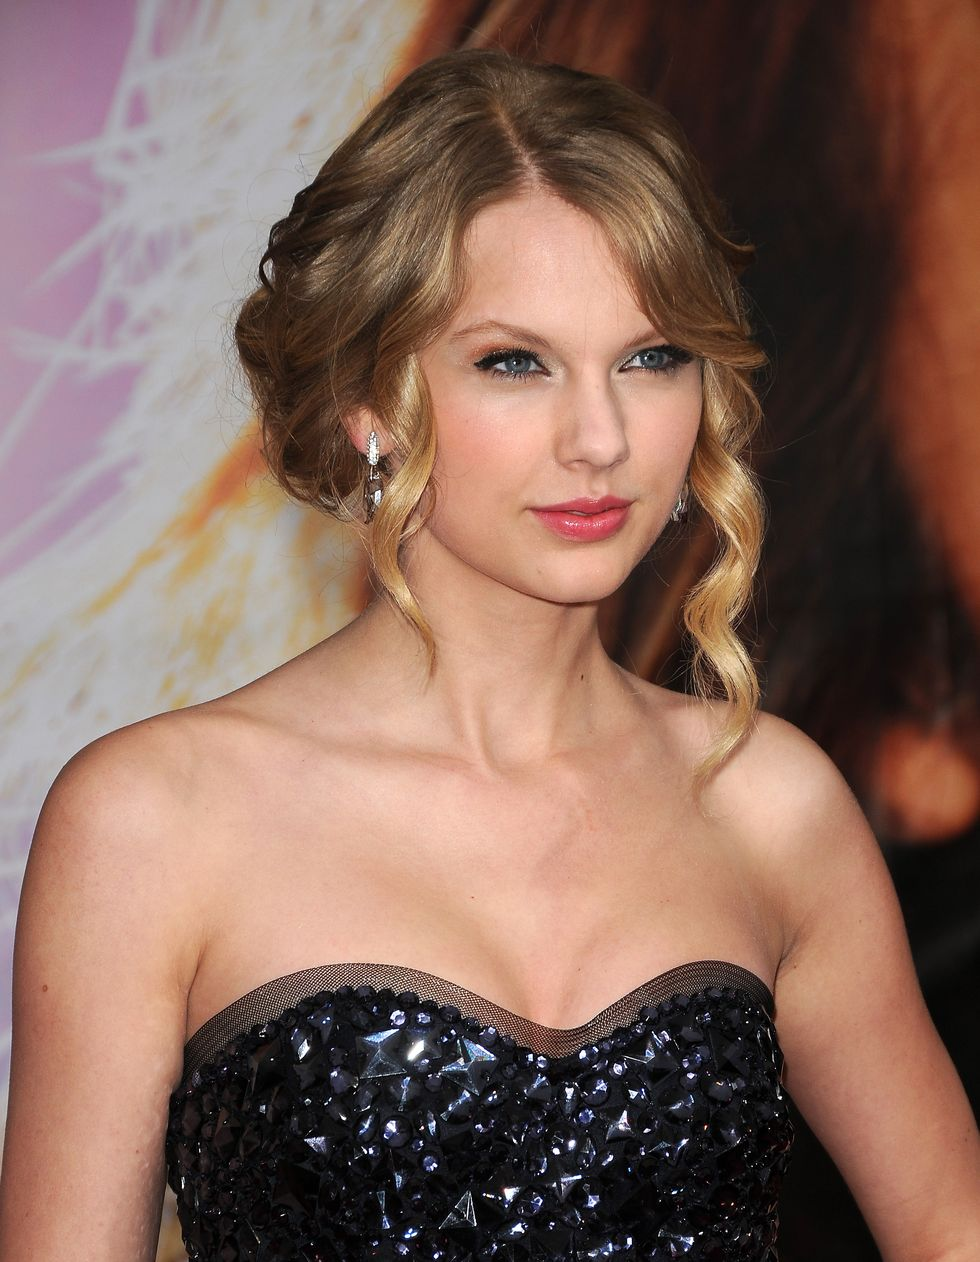 taylor-swift-hannah-montana-the-movie-premiere-in-los-angeles-02